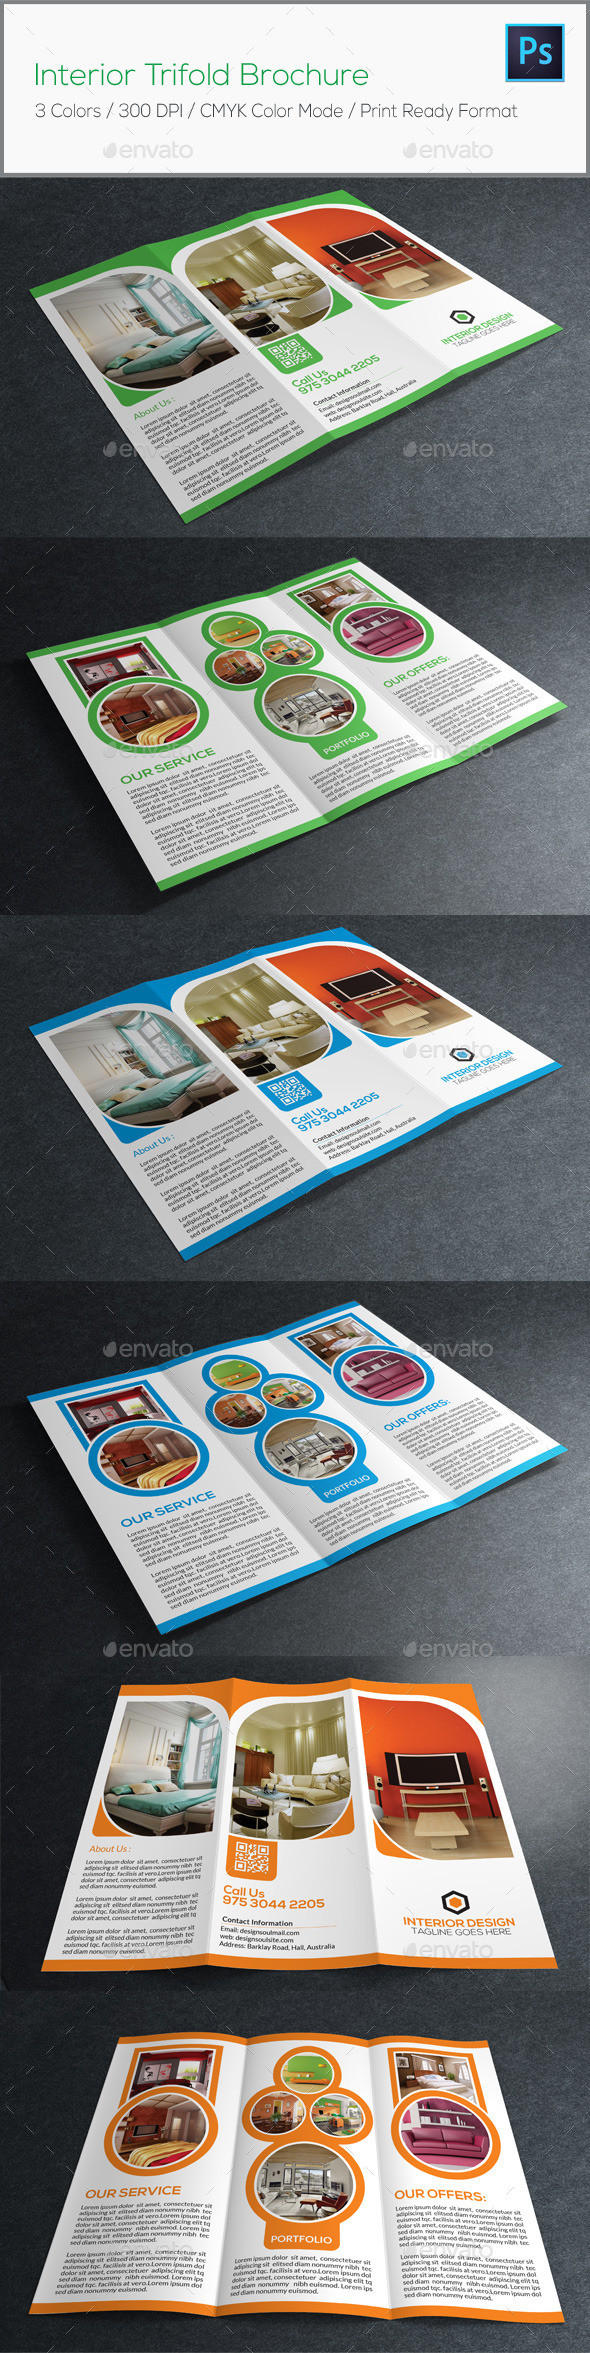 Interior trifold brochure preview